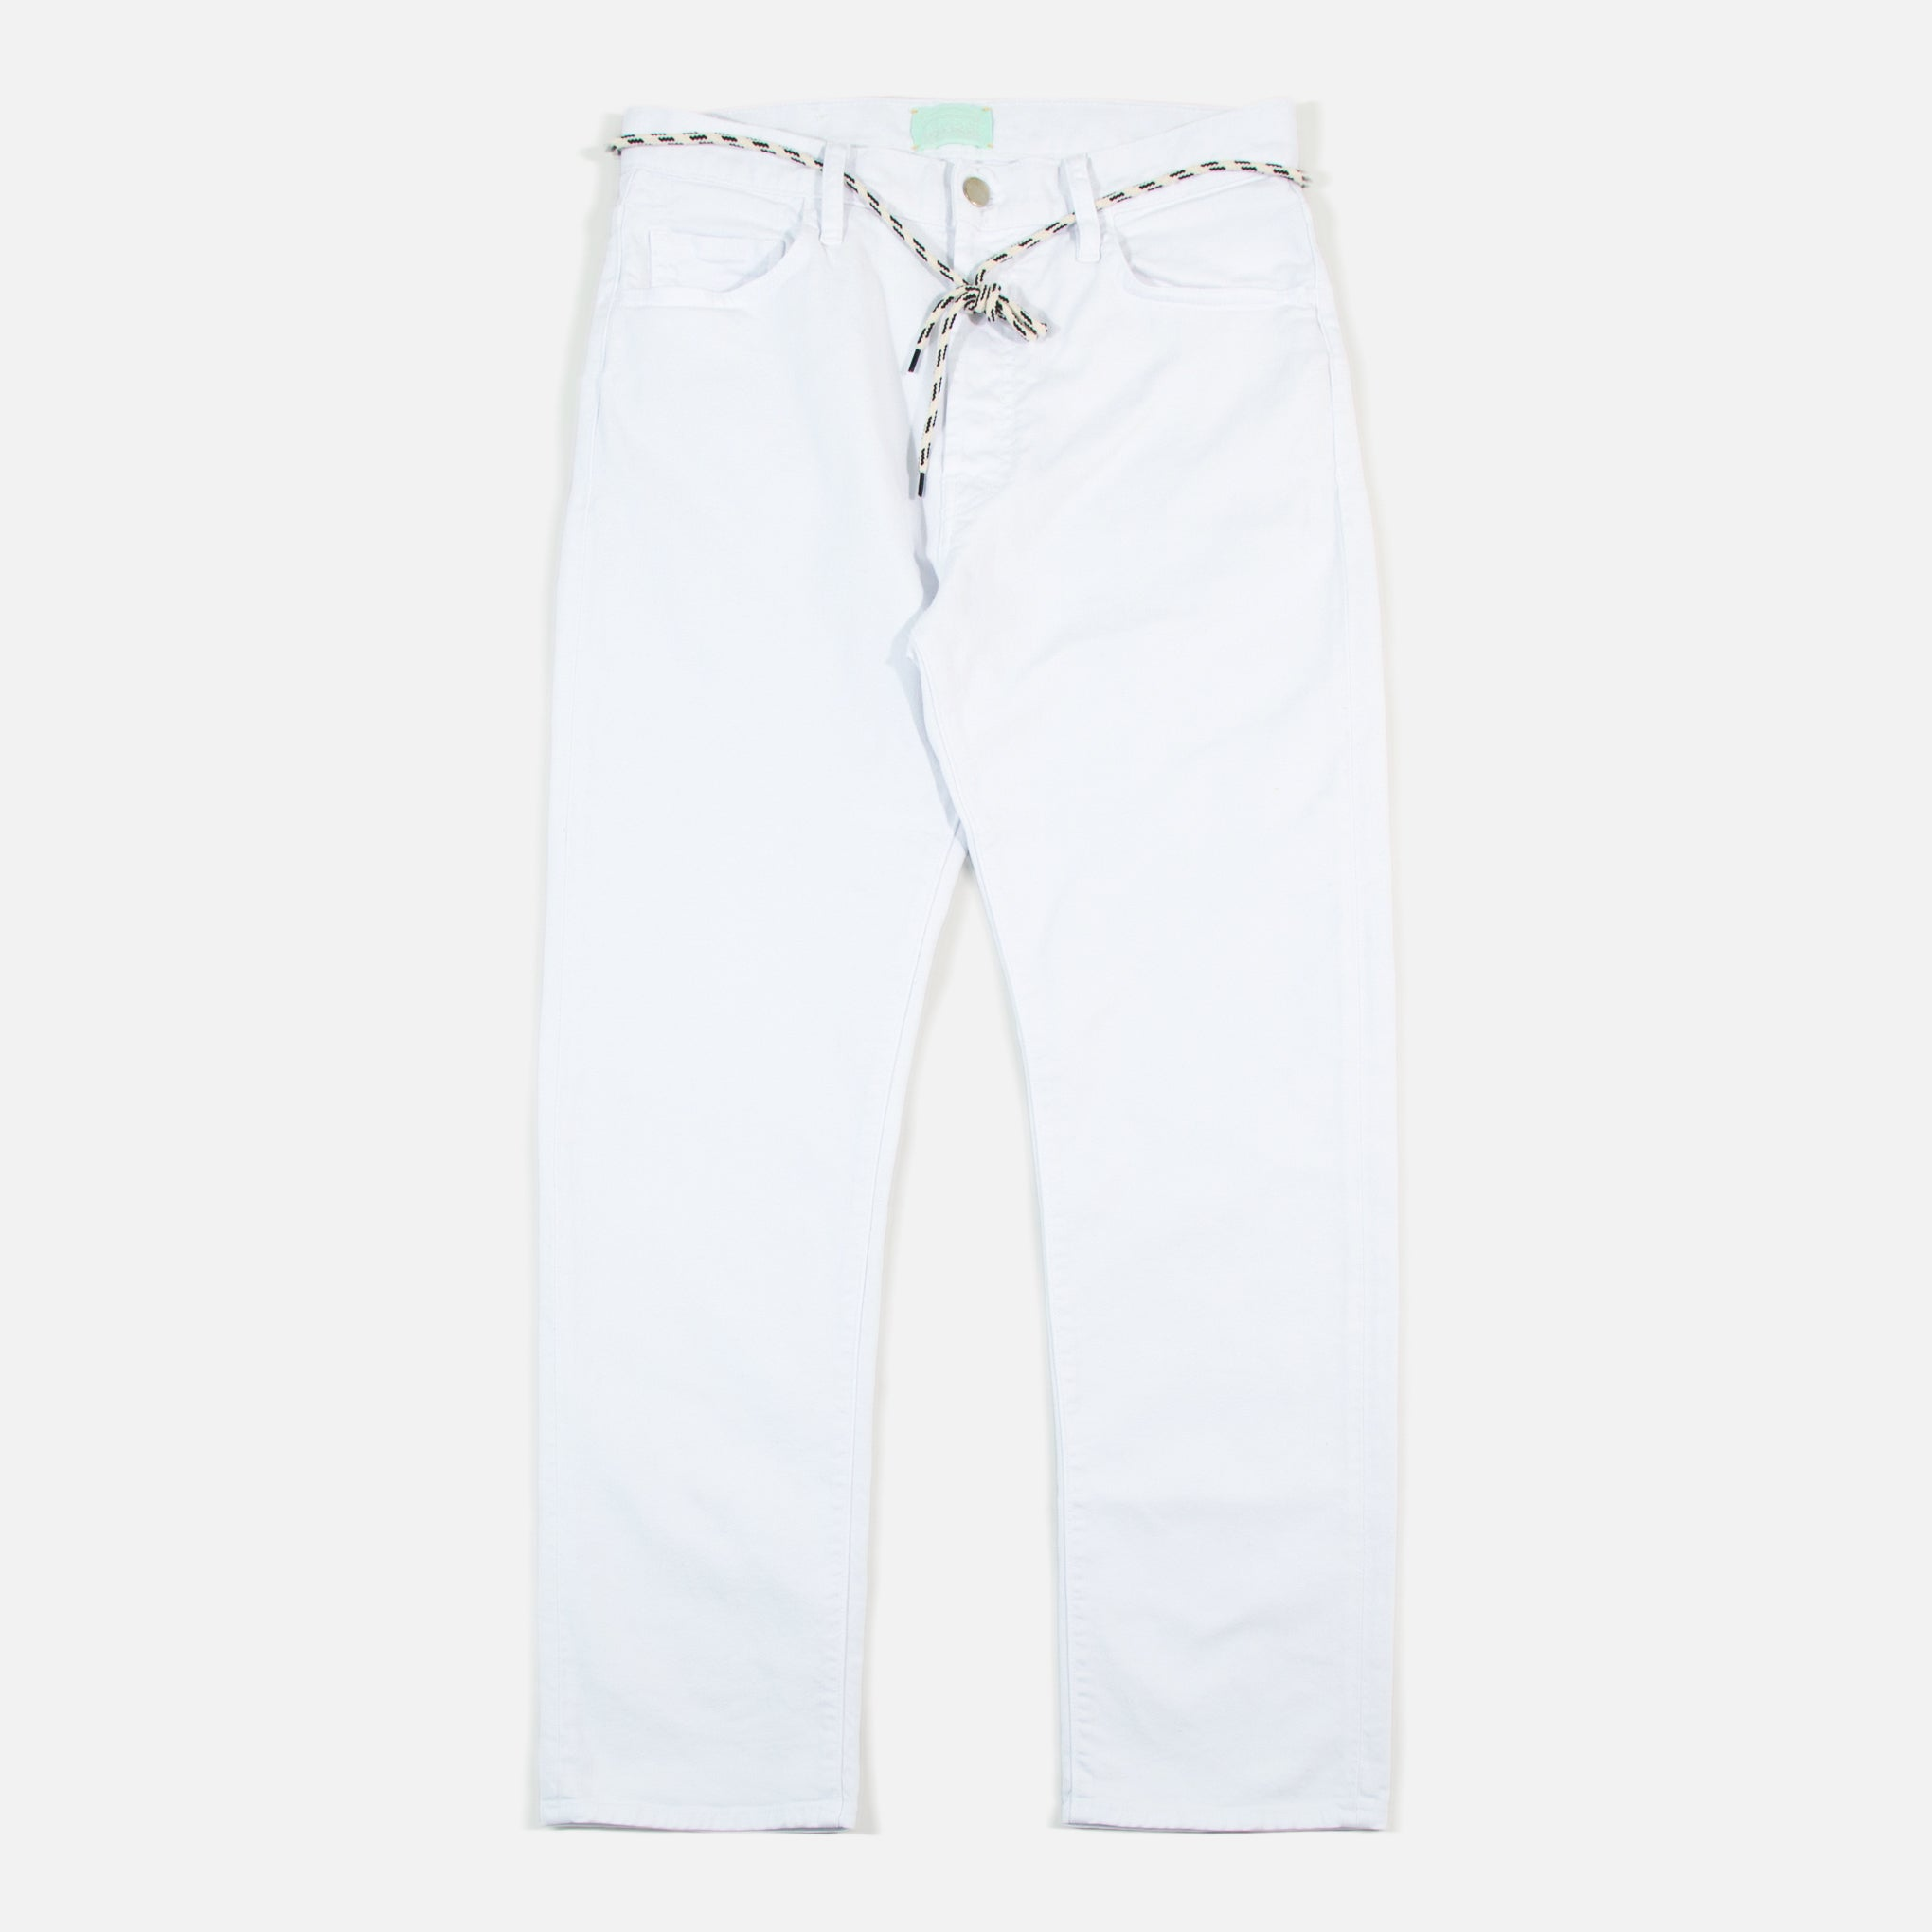 265c8495aa7d48 Aries Clothing Lilly Unisex Selvedge White Jeans | Blues Store